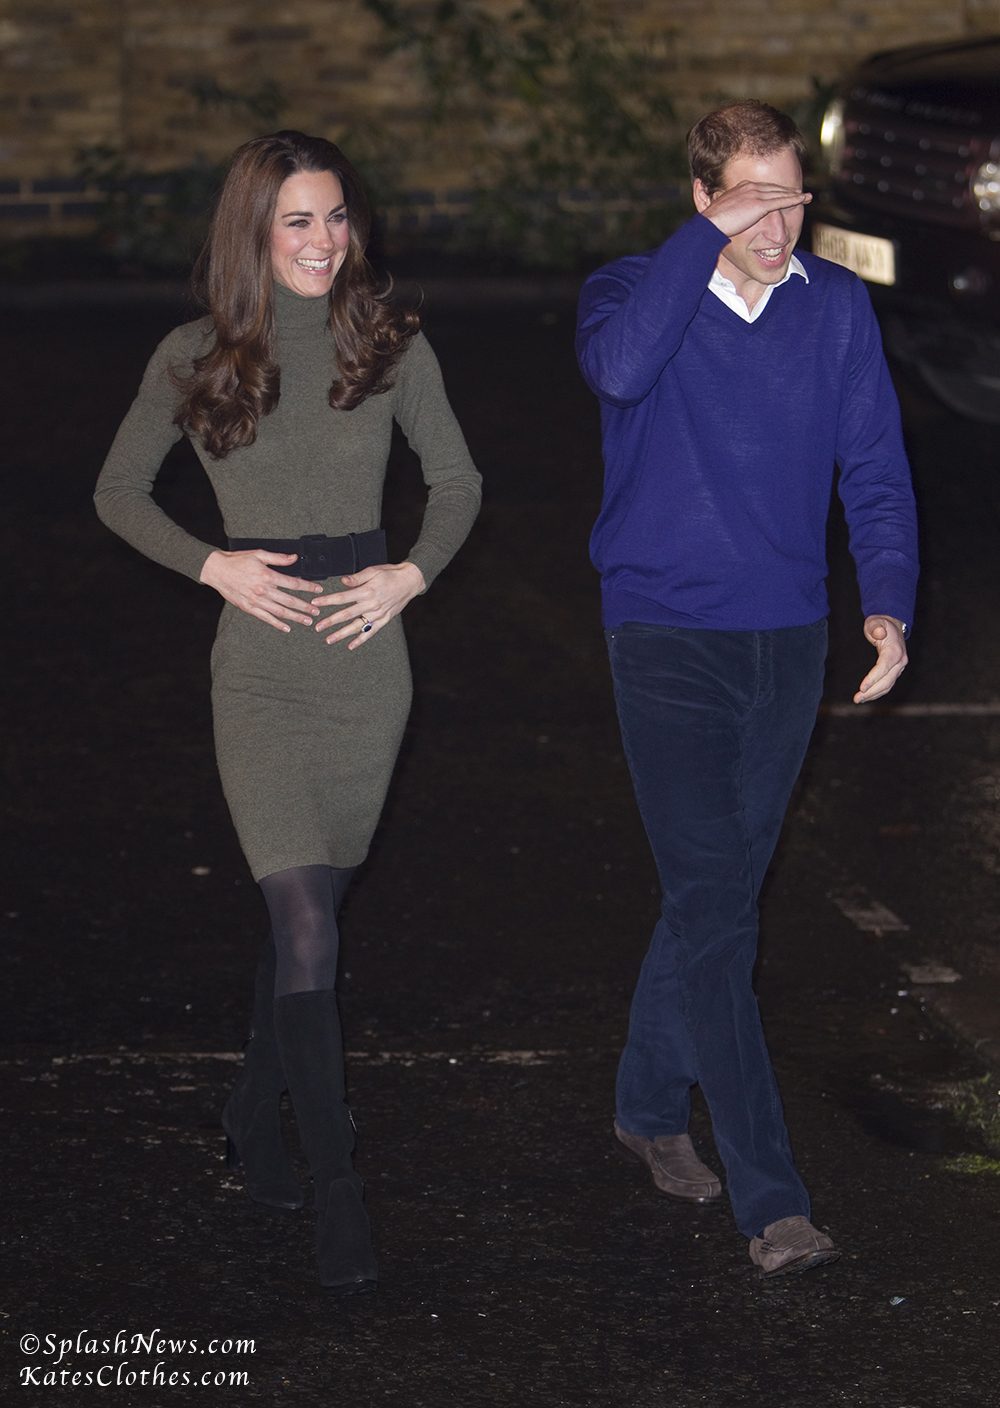 The Duke and Duchess of Cambridge, Prince William and Kate Middleton, pictured visiting Centrepoint charity in Central London